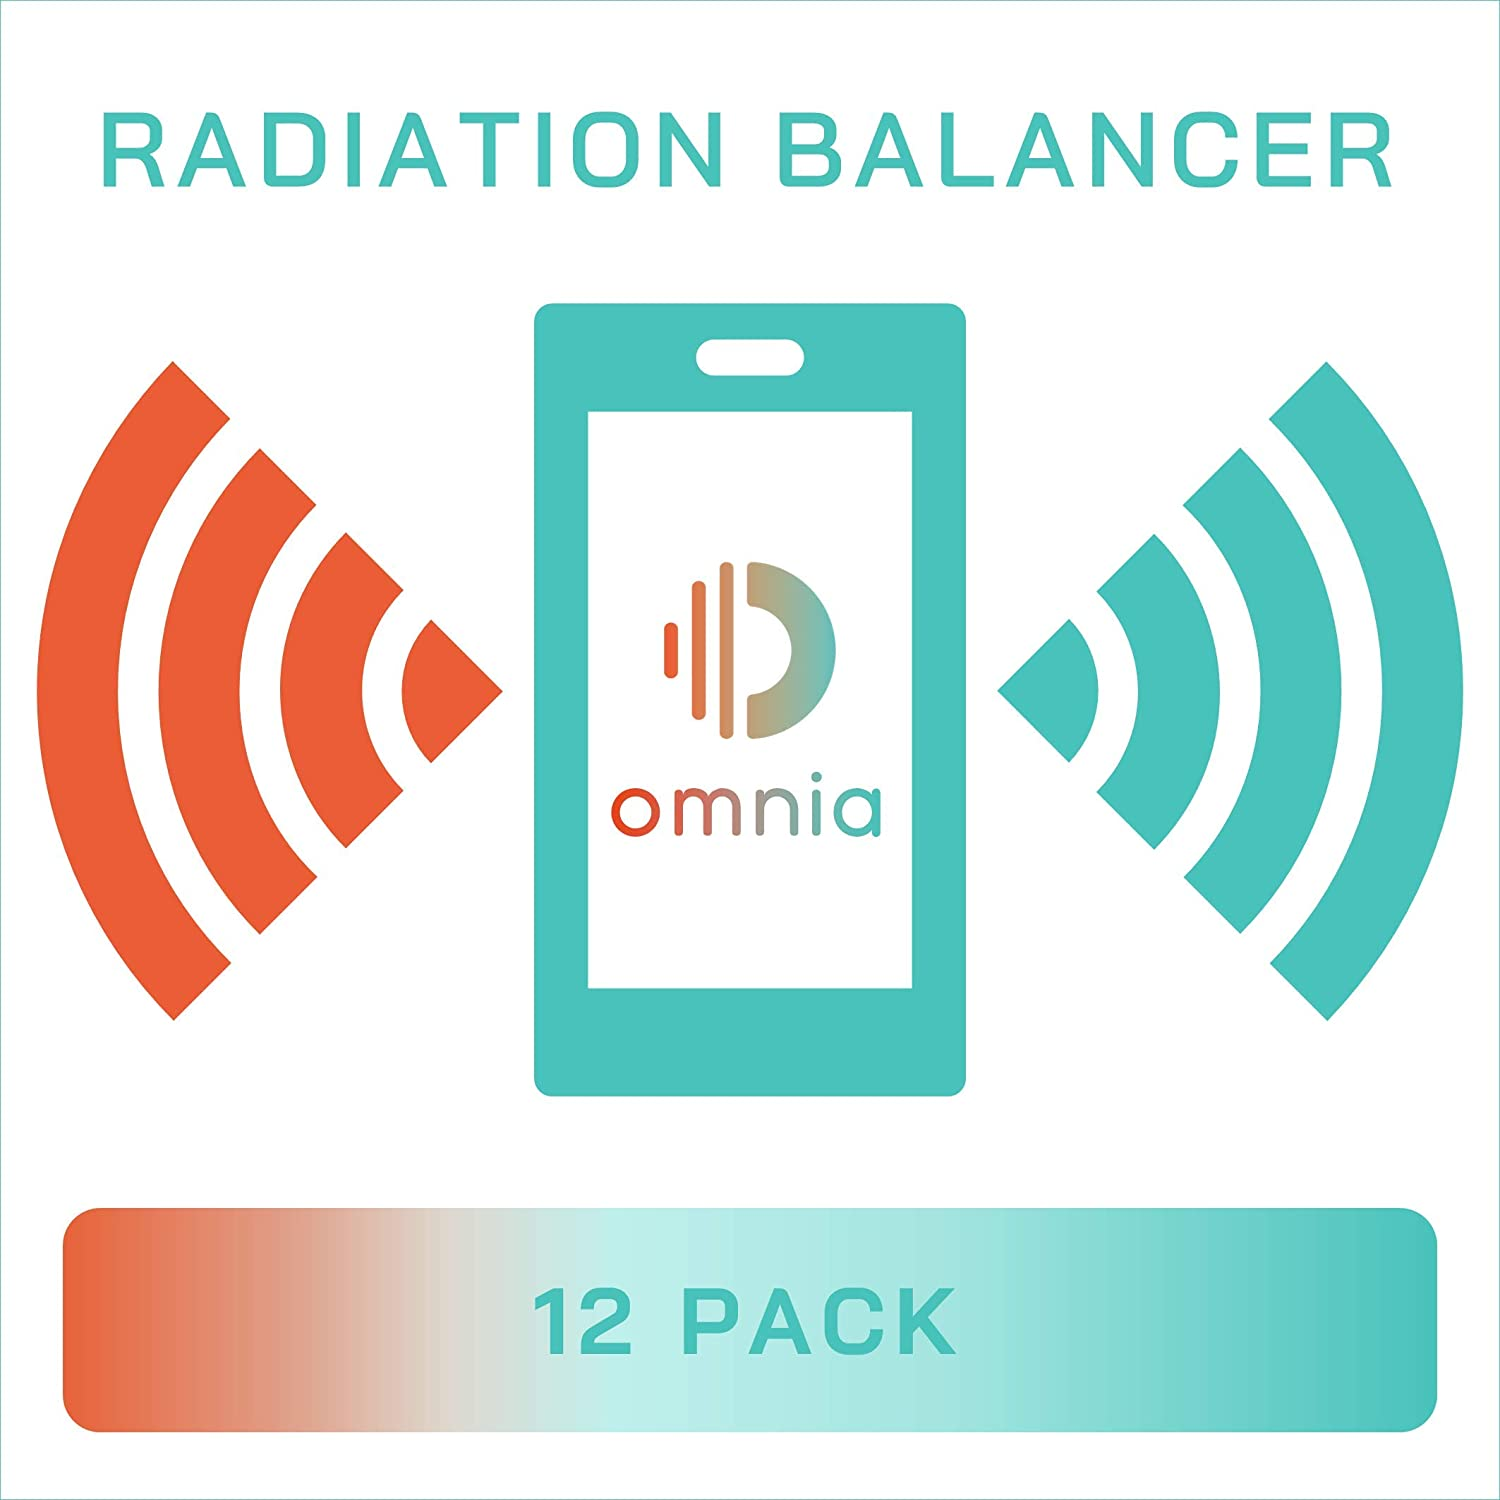 12X Long Beach Mall Omnia Radiation Balancer from EMF ORB Protects Super beauty product restock quality top